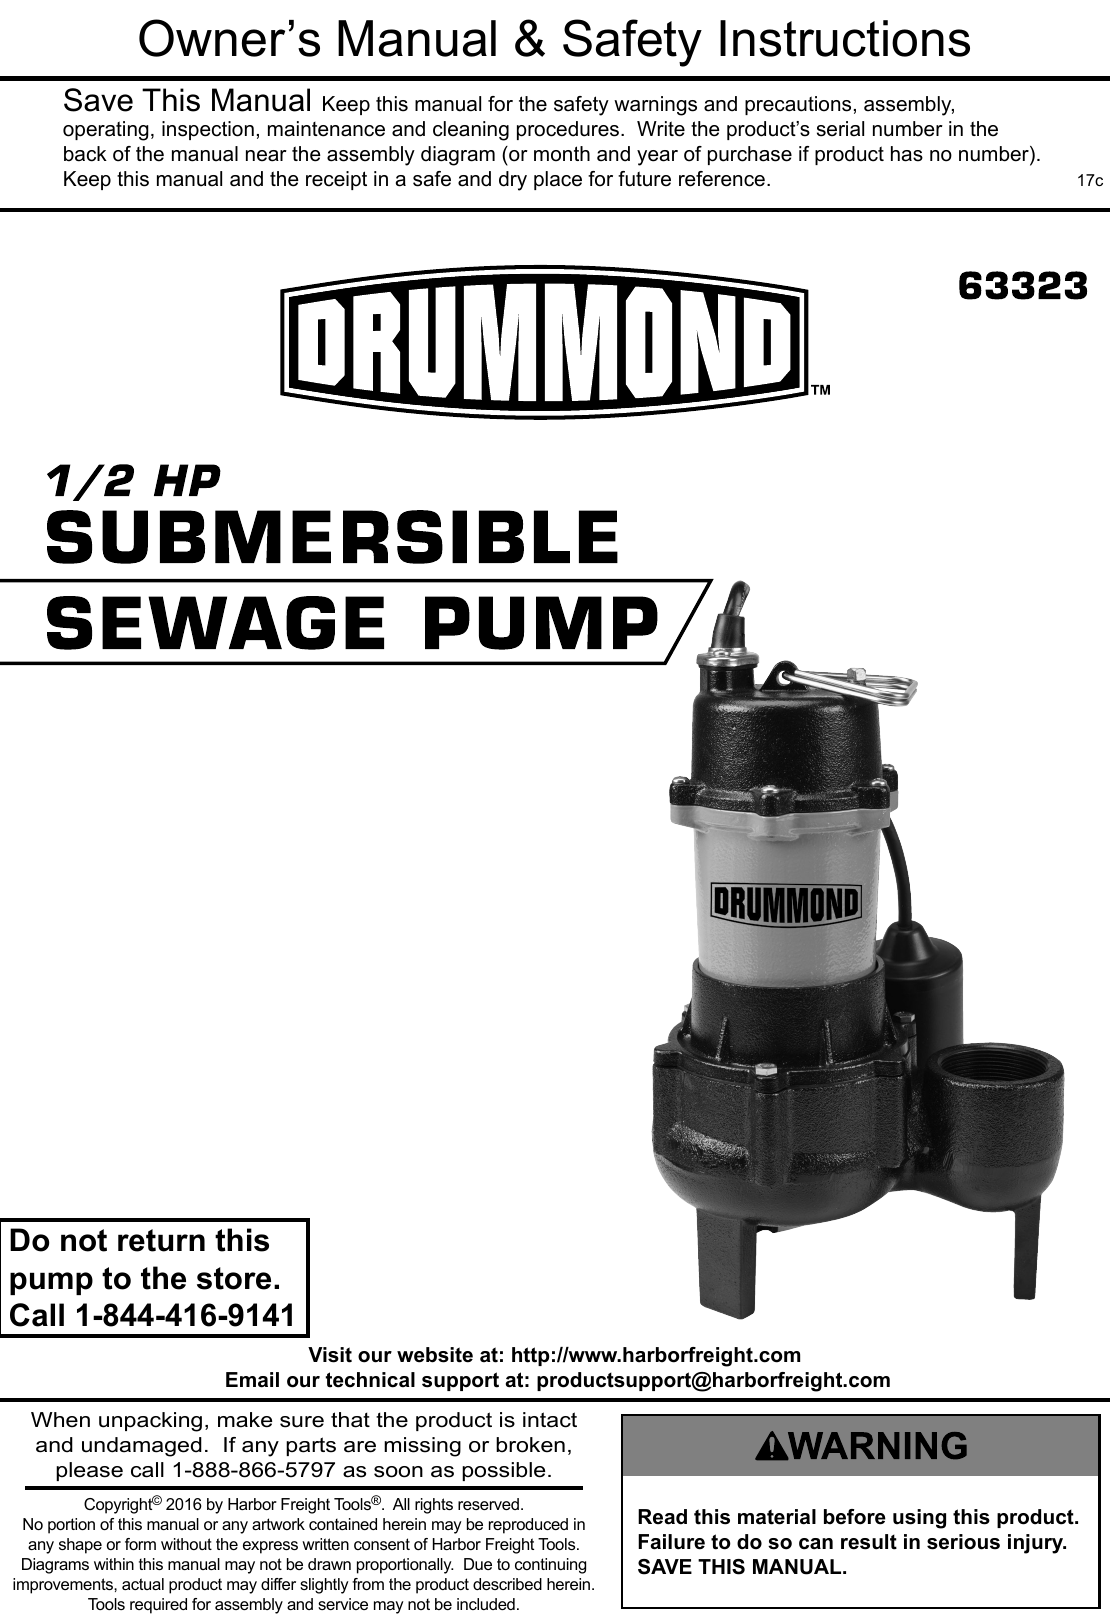 Manual For The 63323 1/2 HP Submersible Sewage Pump With Tether Switch